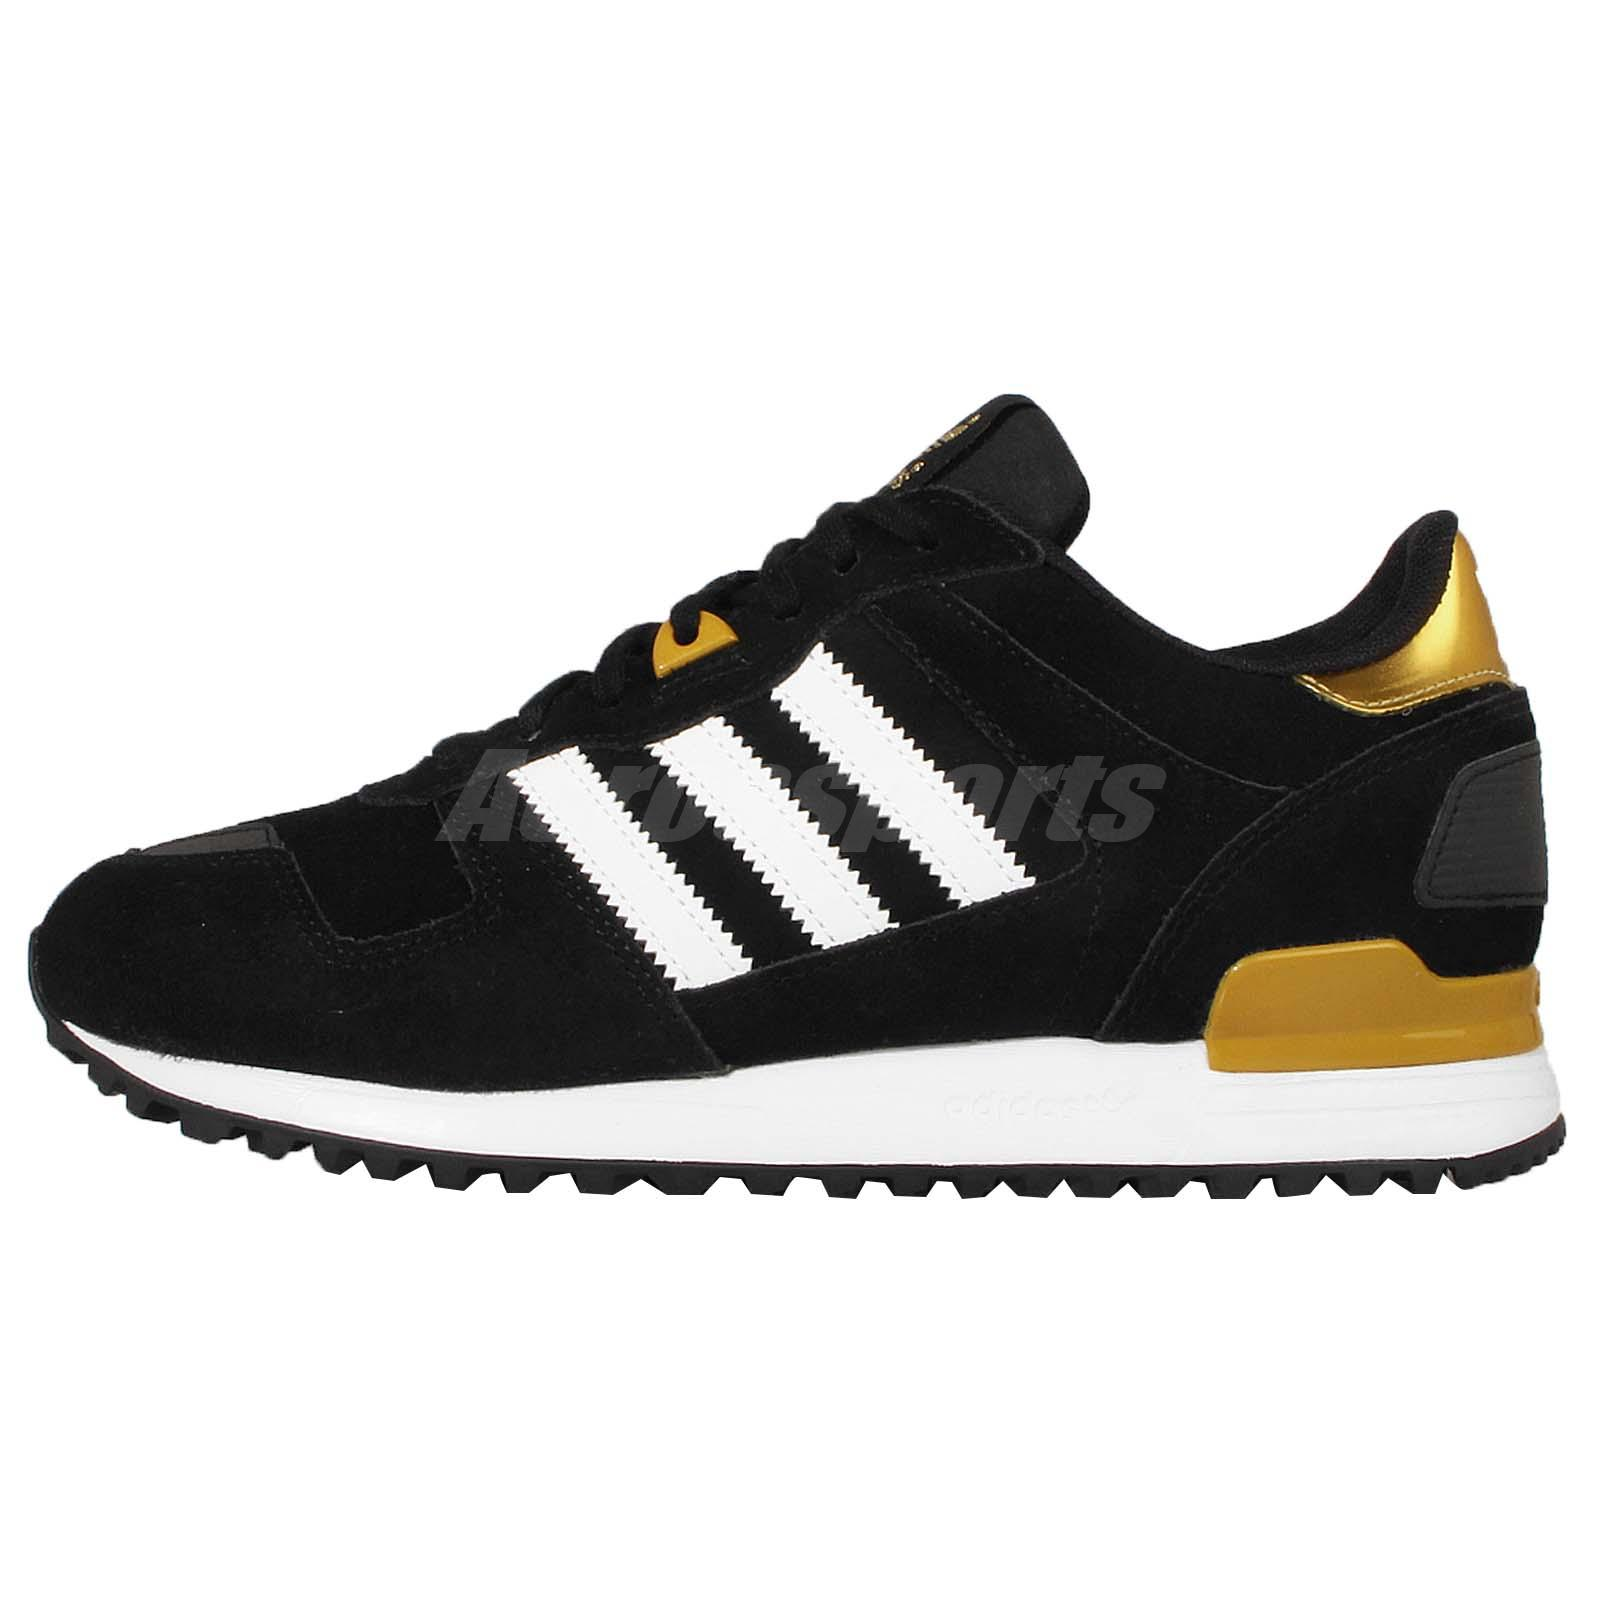 adidas womens shoes black and gold | Adidou